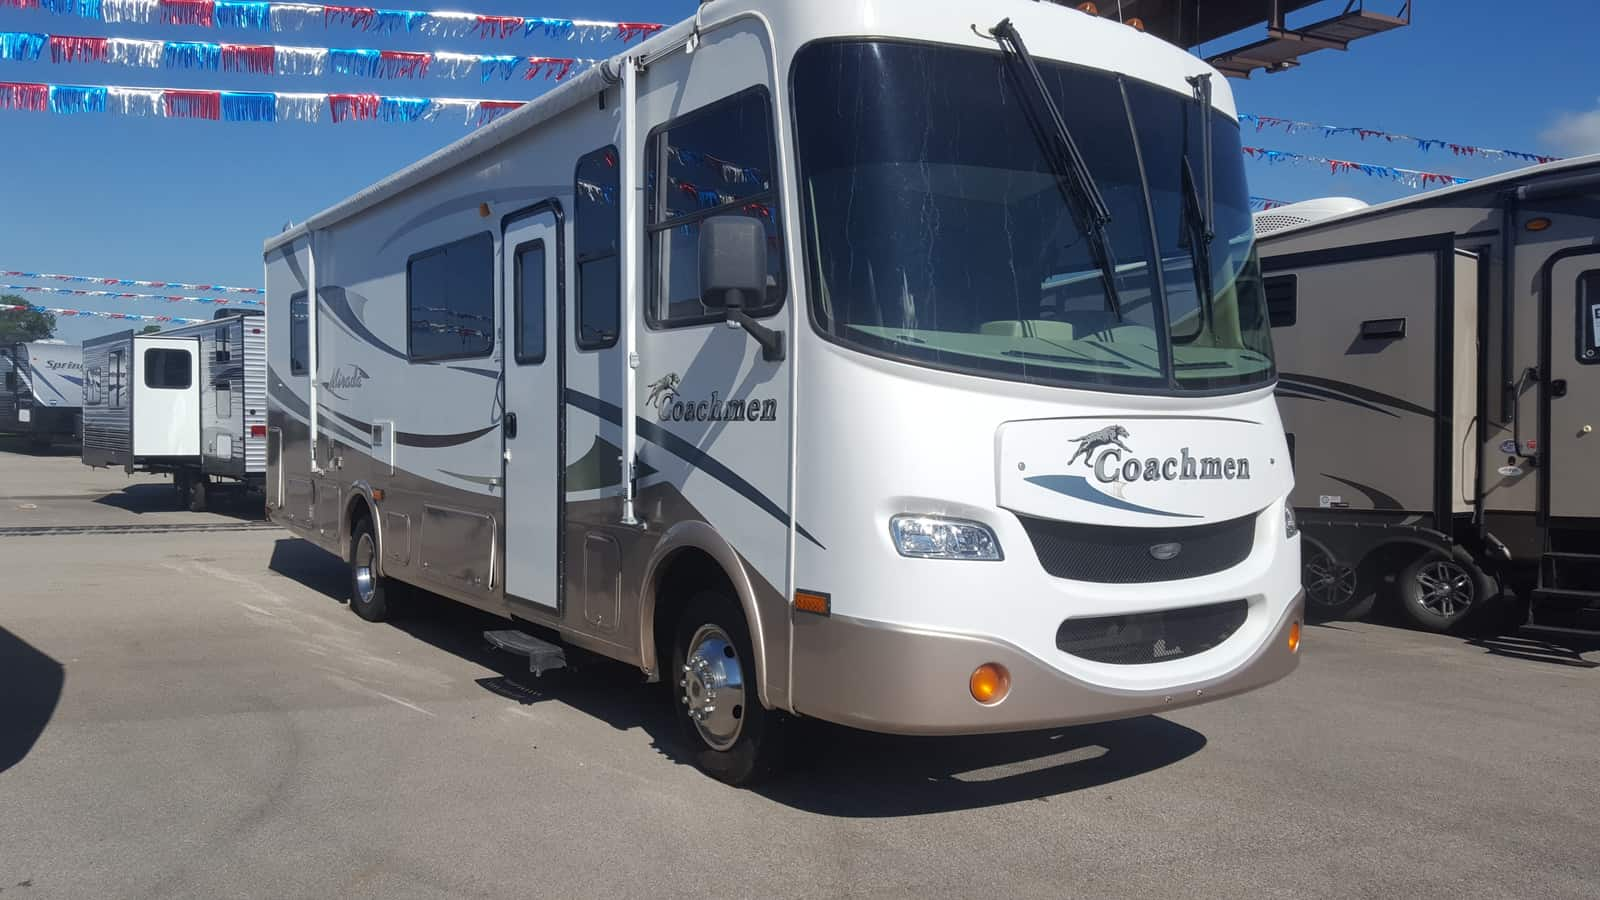 USED 2006 Coachmen MIRADA 300QB - American RV